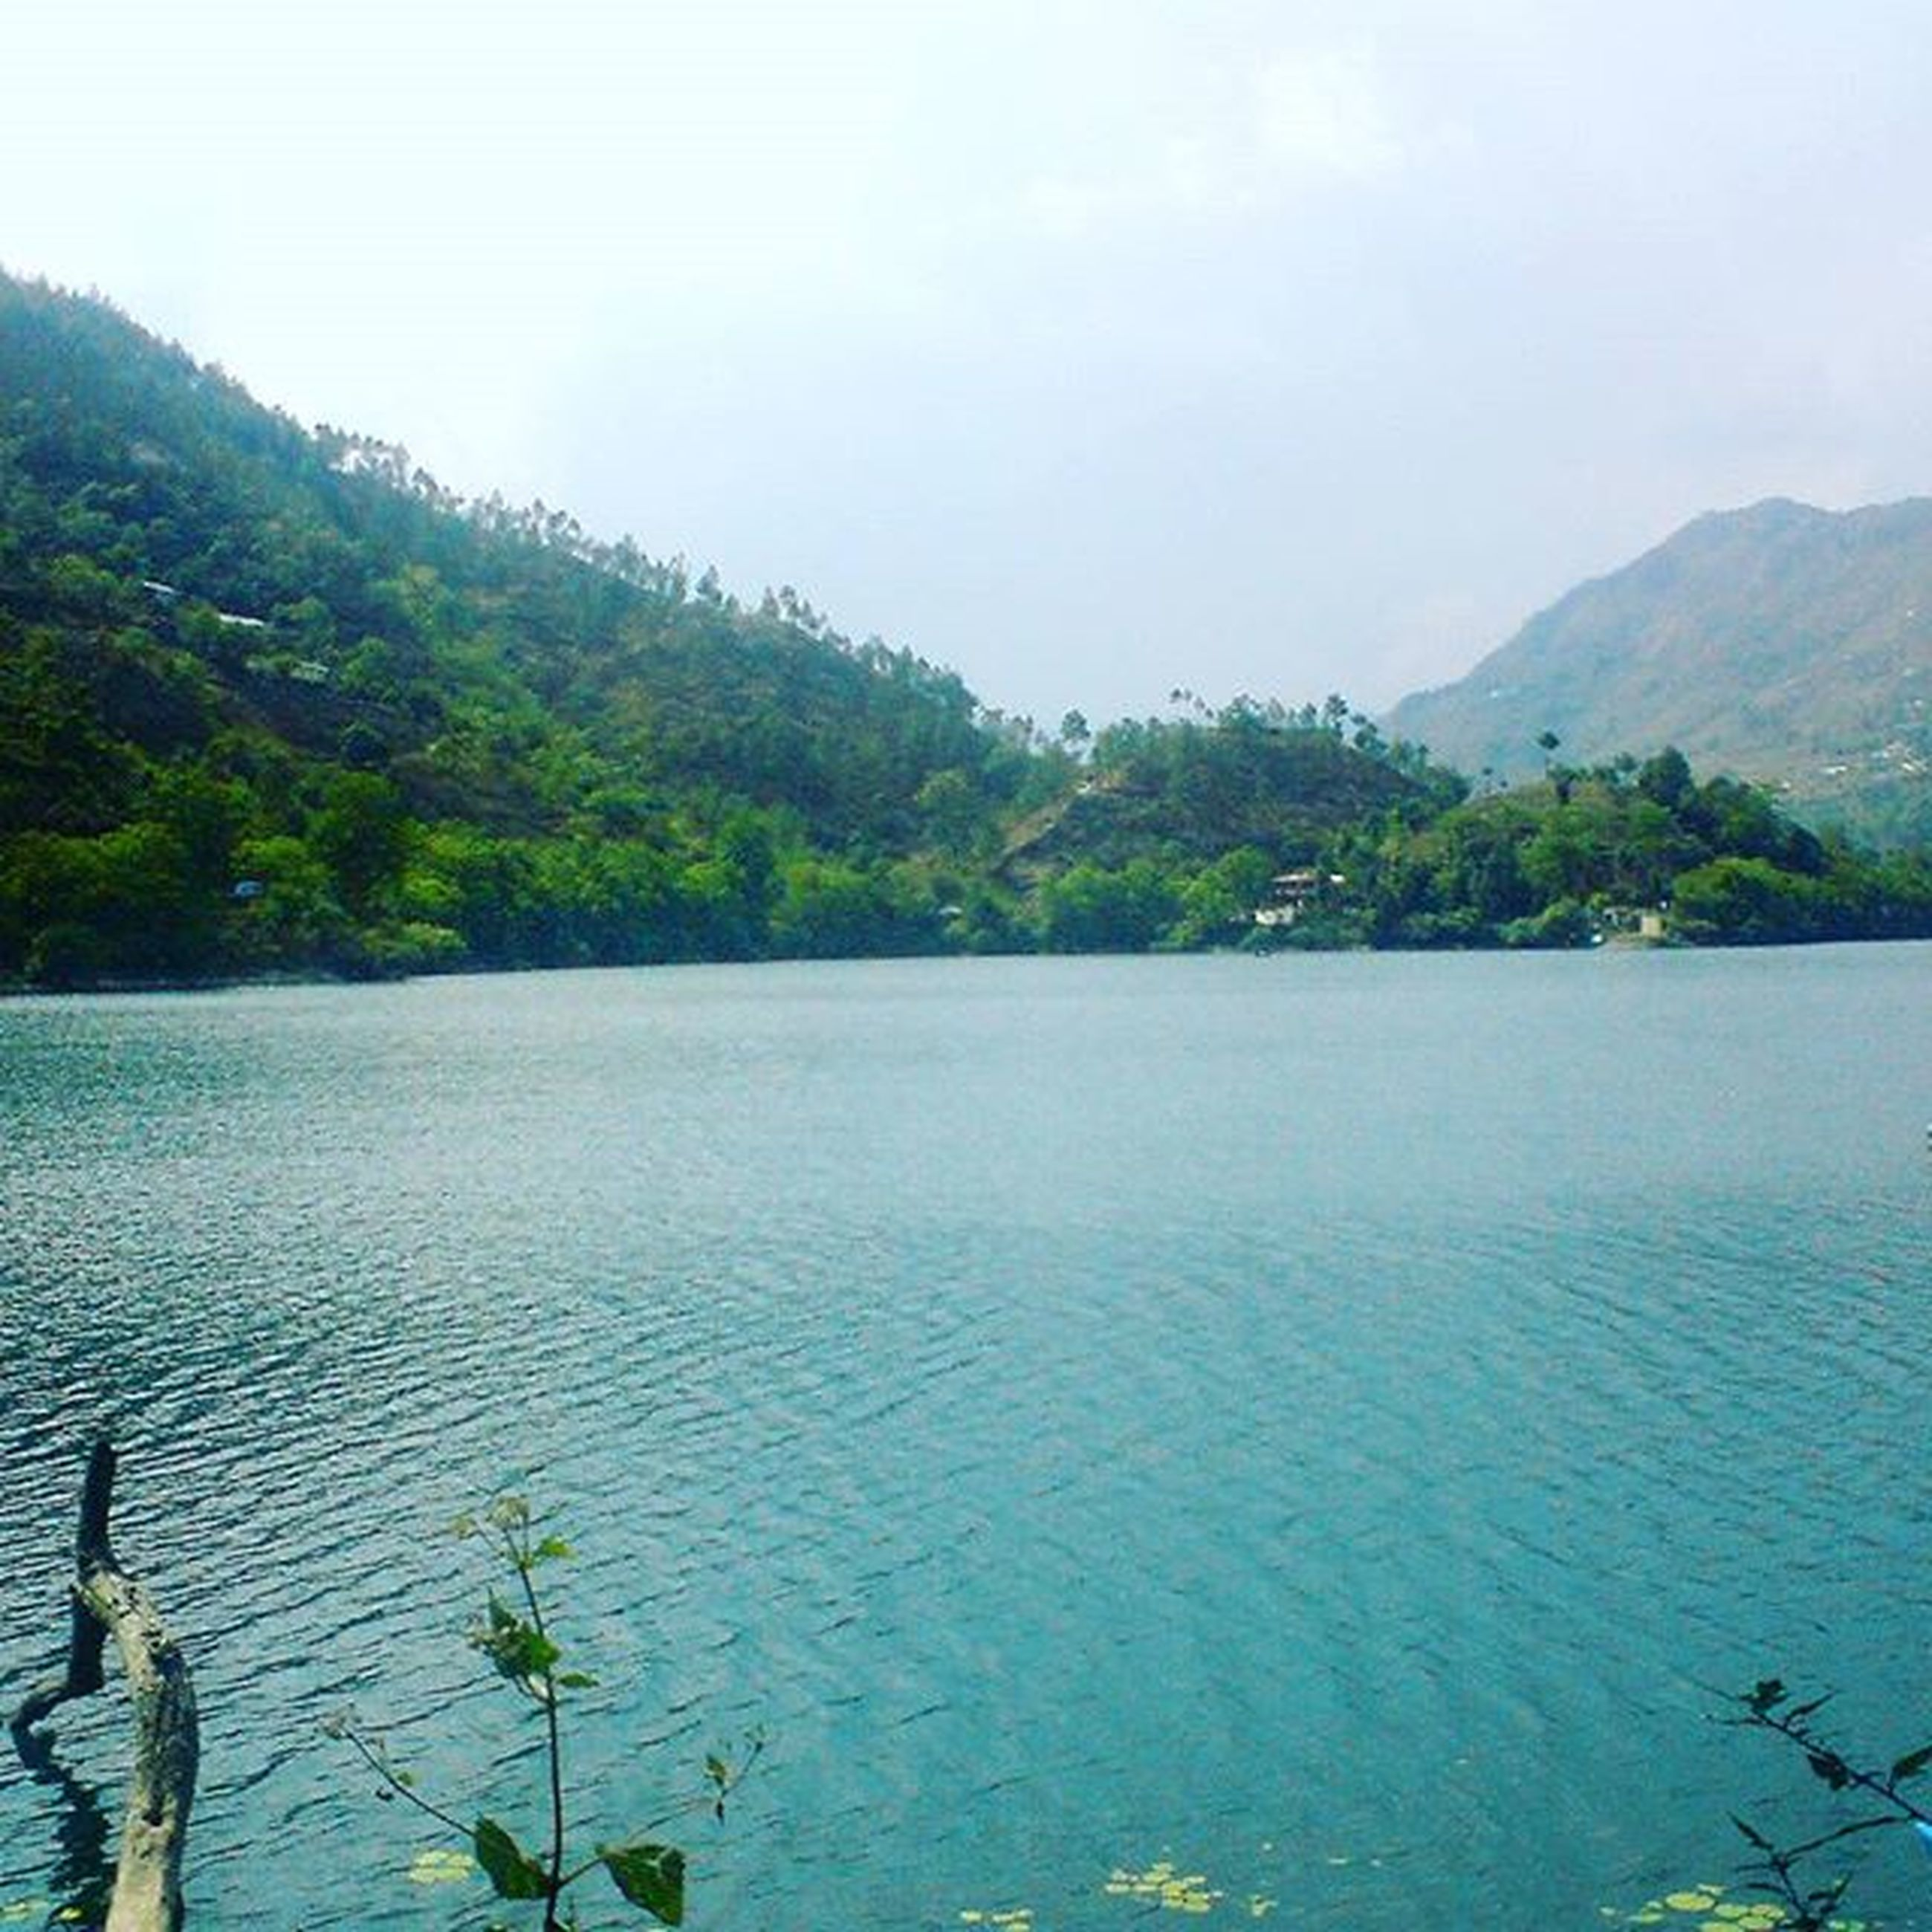 water, tranquil scene, tranquility, mountain, scenics, beauty in nature, tree, nature, waterfront, lake, rippled, sky, sea, idyllic, clear sky, mountain range, calm, day, non-urban scene, outdoors